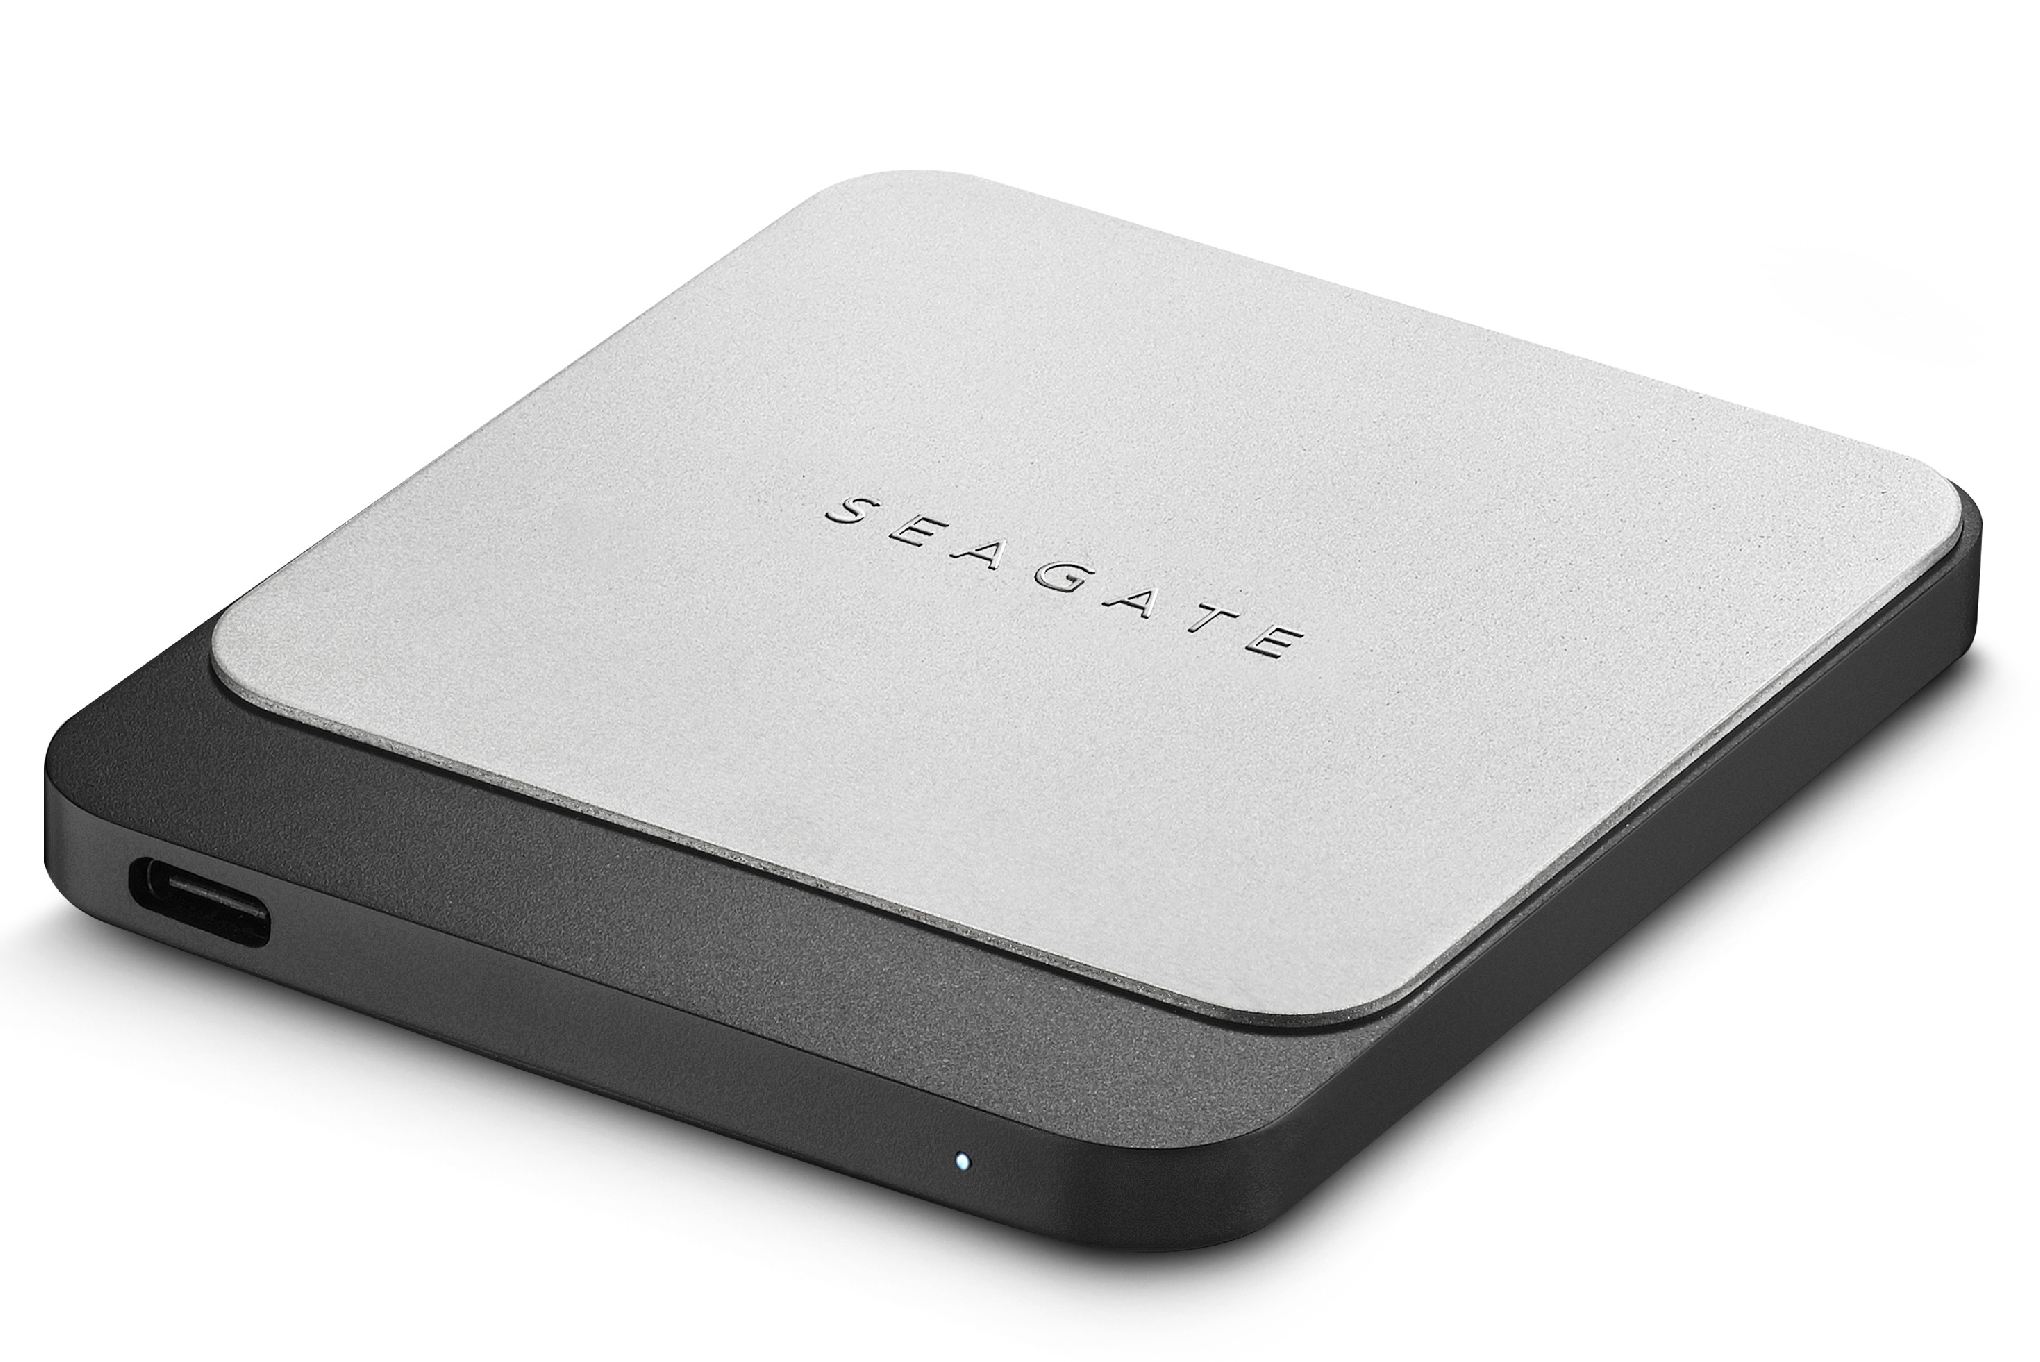 security software for seagate external hard drive